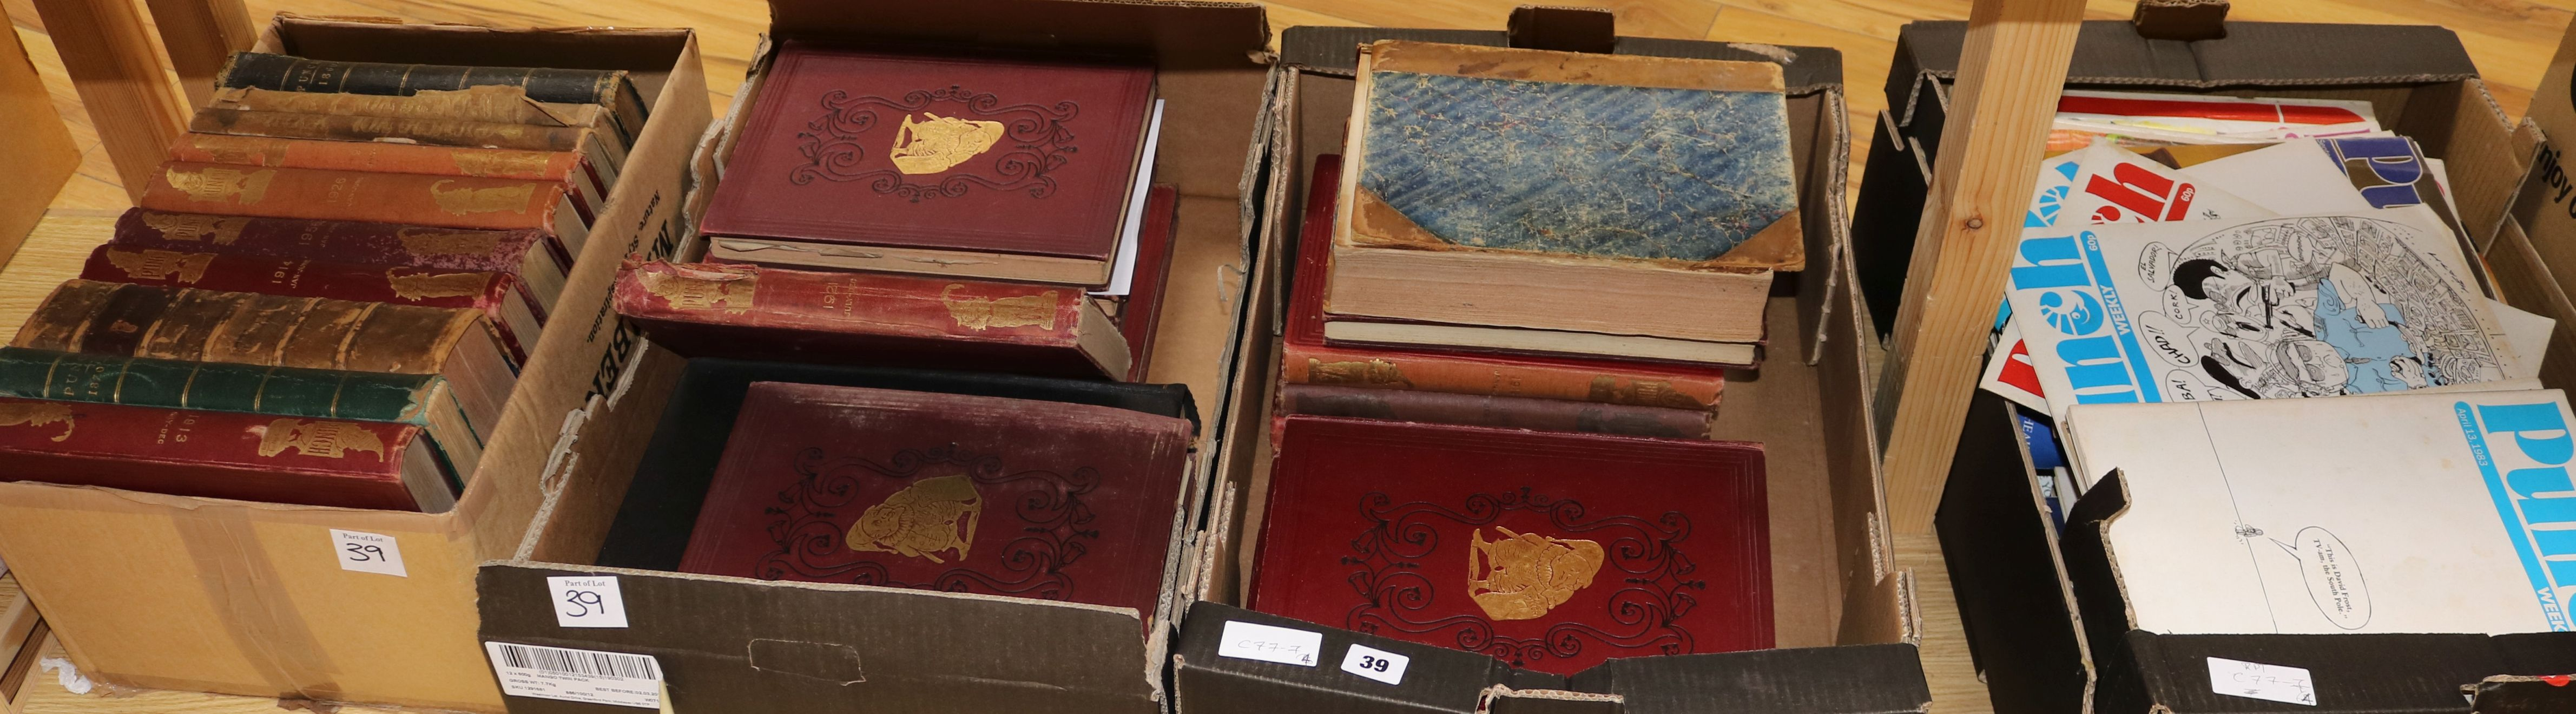 Lot 39 - Three boxes of 'Punch' books and seven boxes of 'Punch' magazines